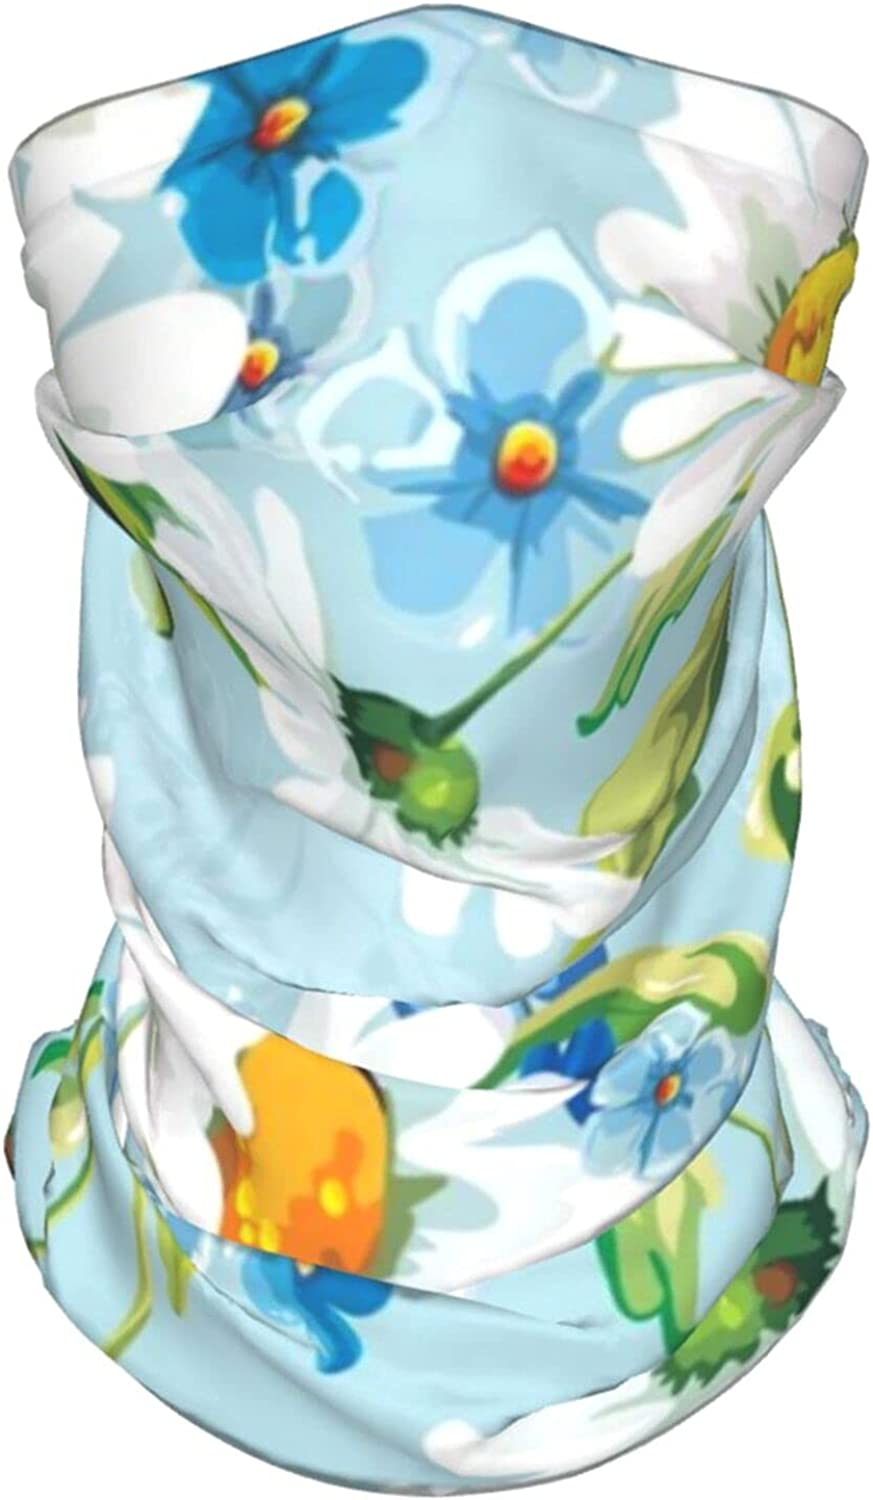 Drawing Flowers Daisies Neck Gaiter Multipurpose Headwear Ice Silk Mask Scarf Summer Cool Breathable Outdoor Sport 4 Pcs